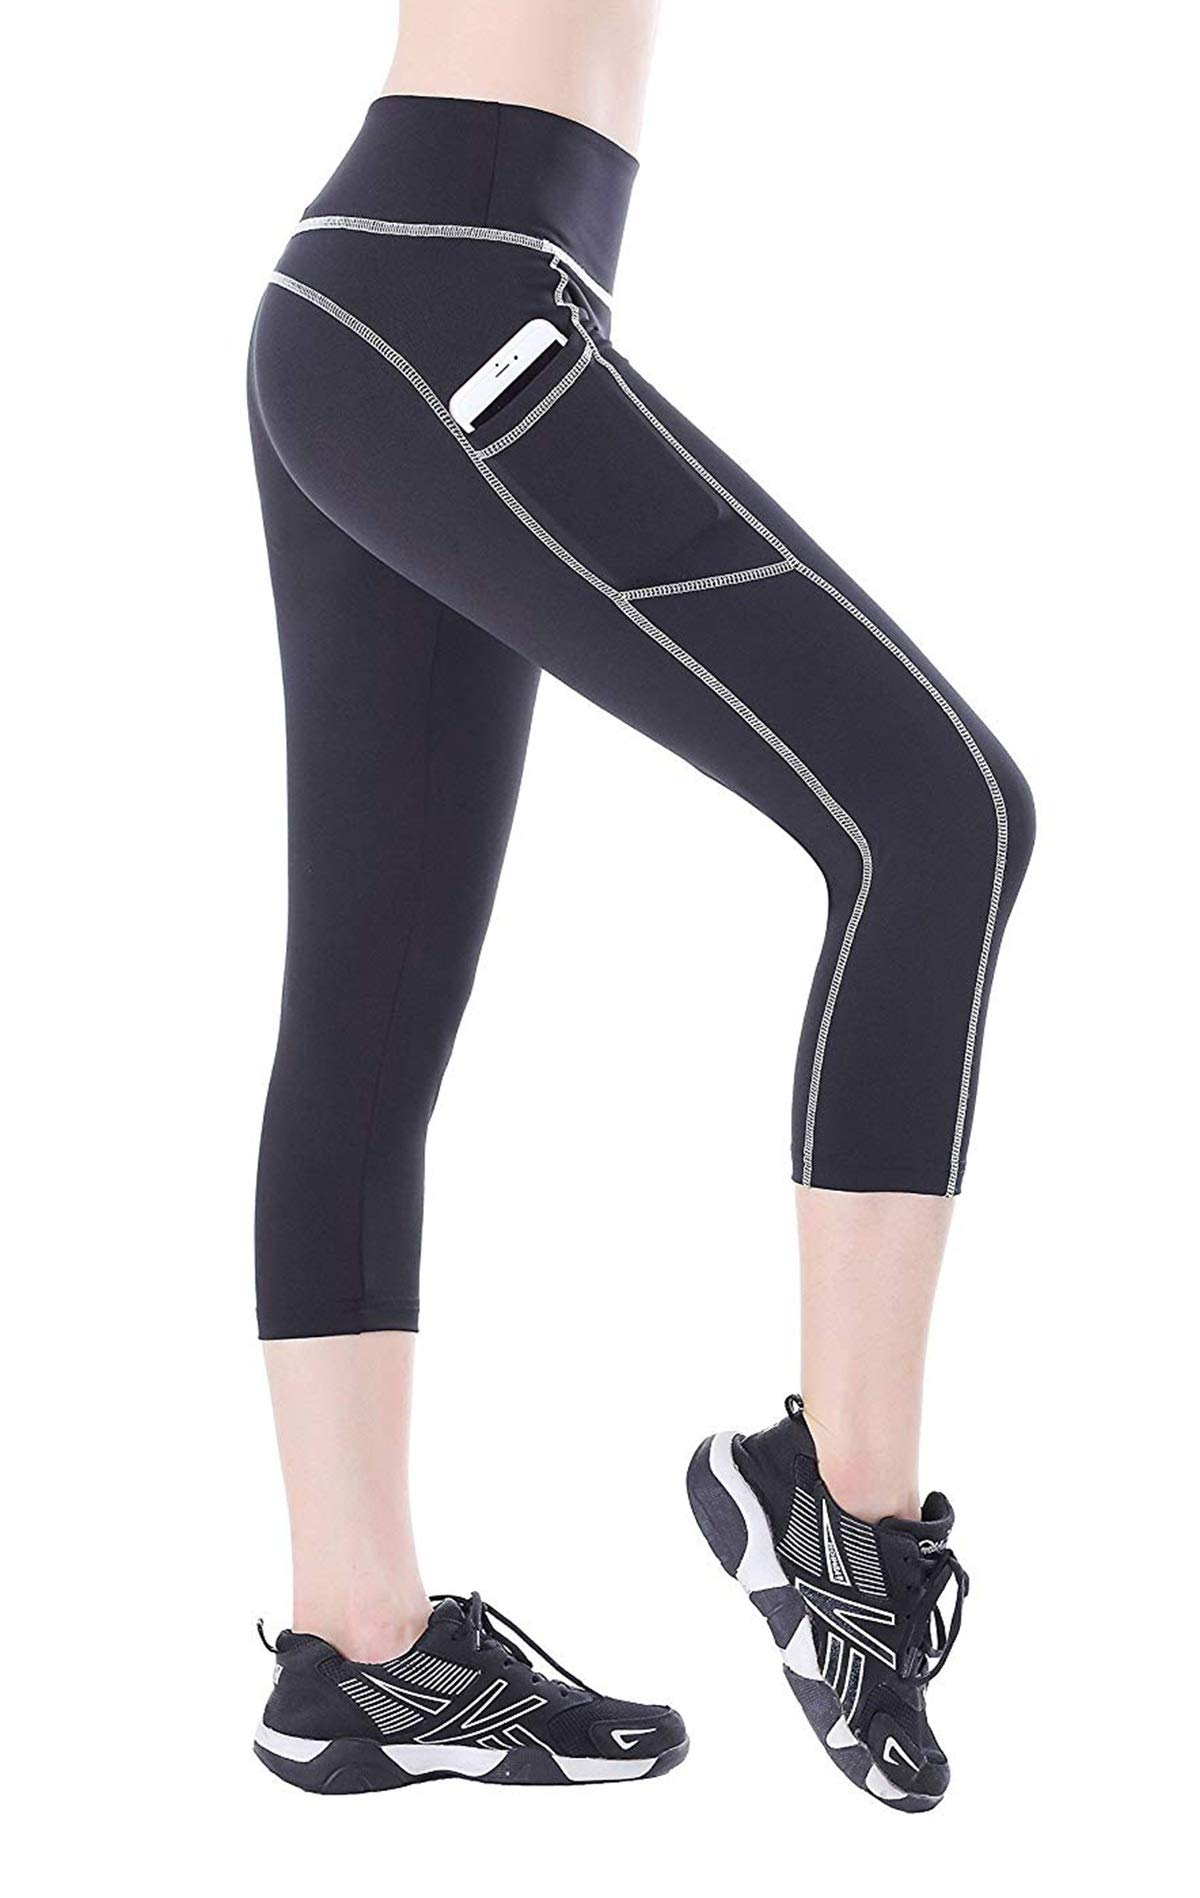 Amazon price history for BLINKIN Yoga,Gym and Active Sports Fitness Black Capri Tights with Side Pockets for Women|Girls(Polyester Fabric)(015)